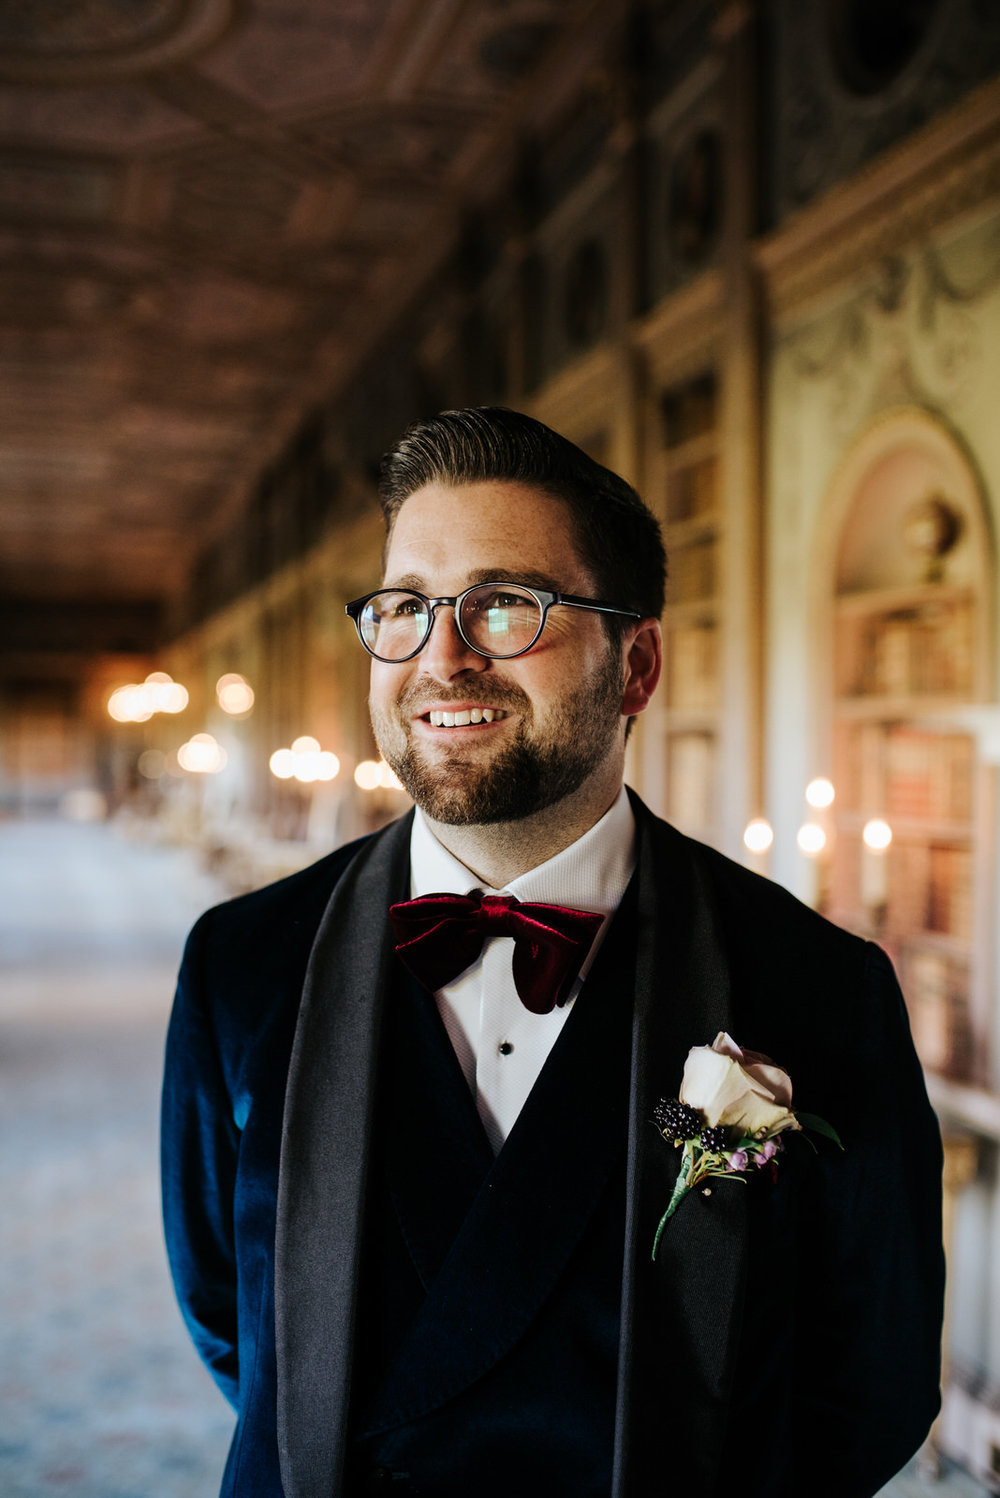 Candid portrait of the groom as he stands in Syon House's library room and looks dapper